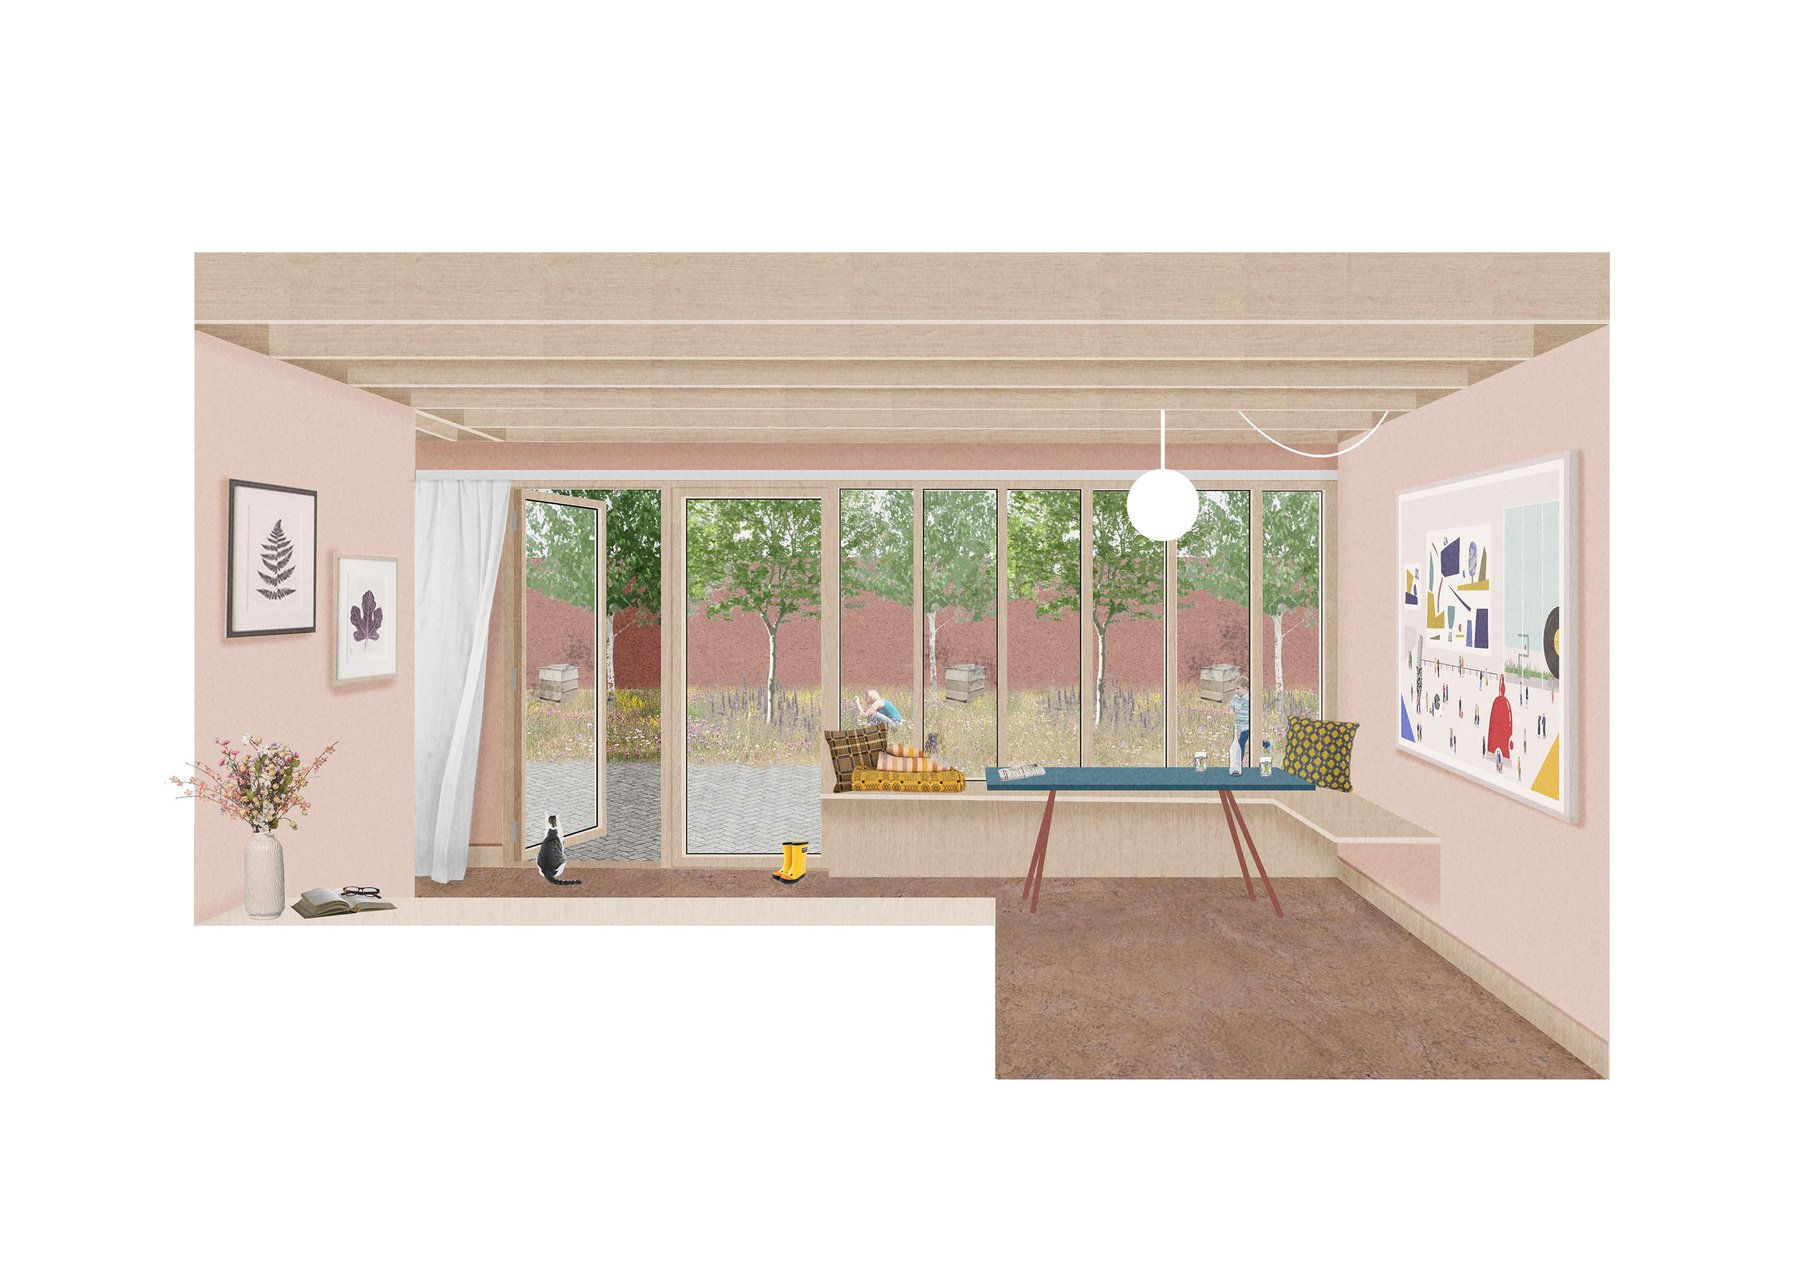 Morgan Davies, Interior Perspective, A workspace with view into walled garden.jpg